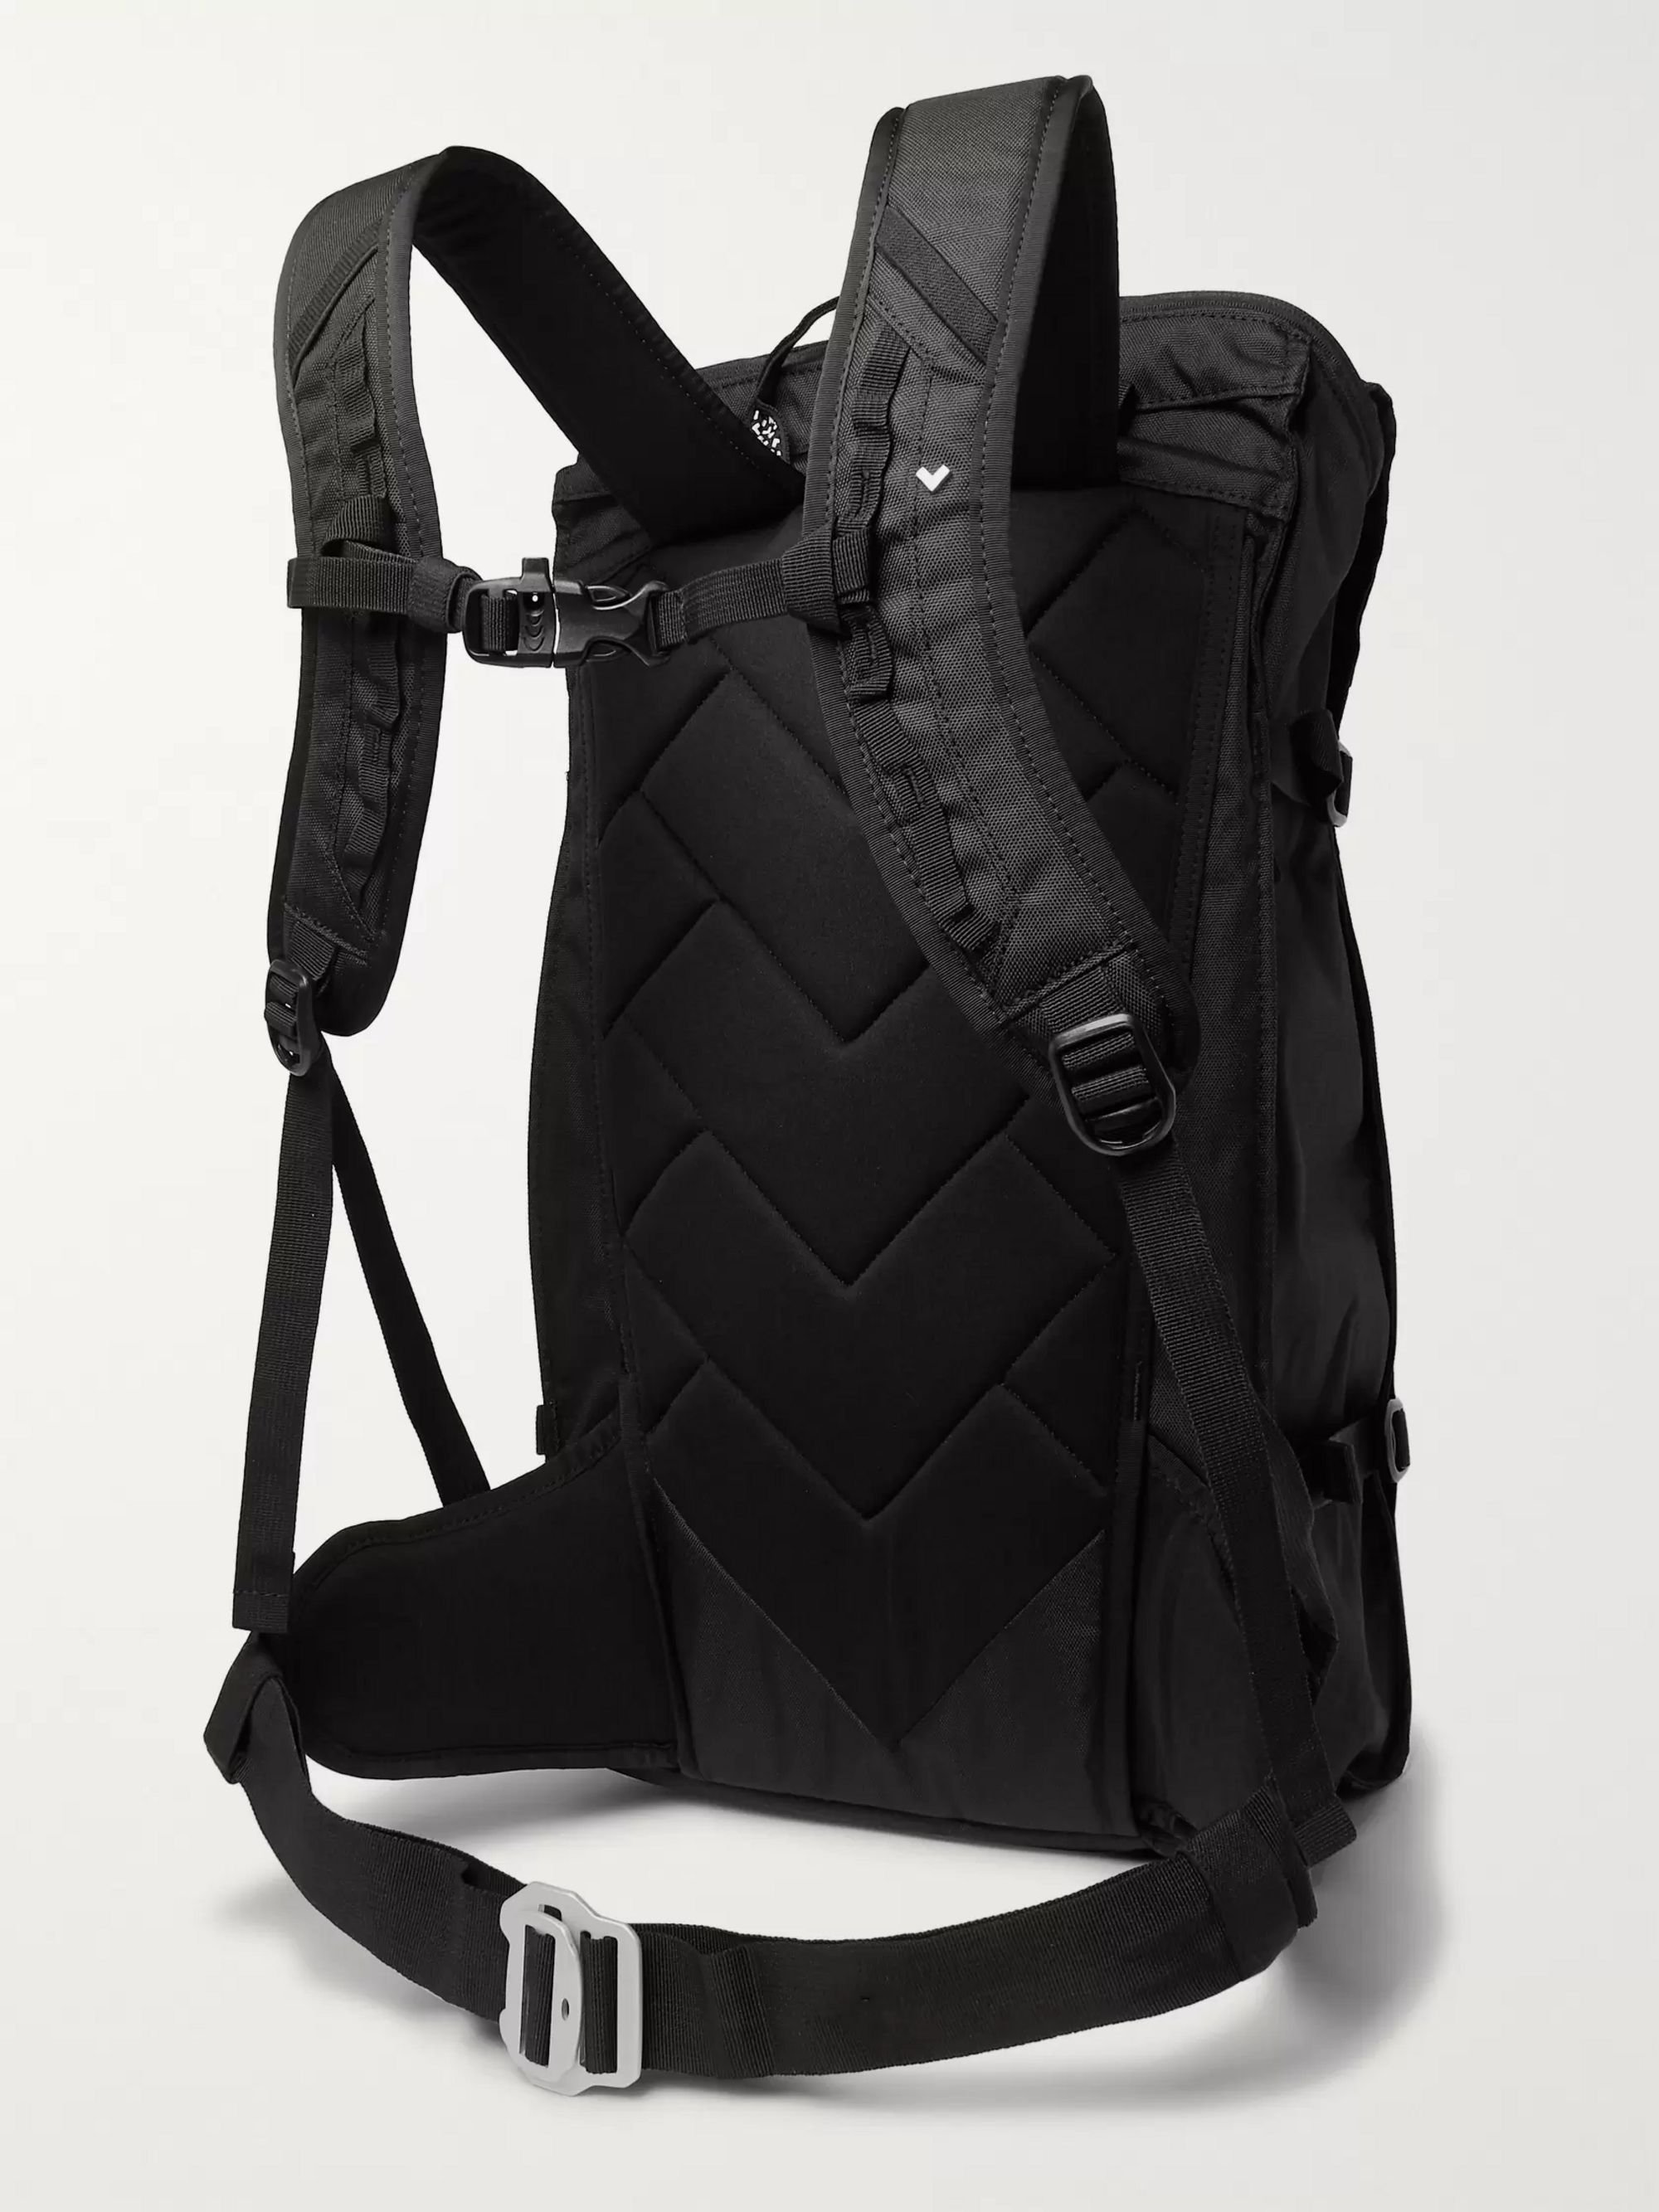 Black Crows Dorsa 20 Shell Backpack